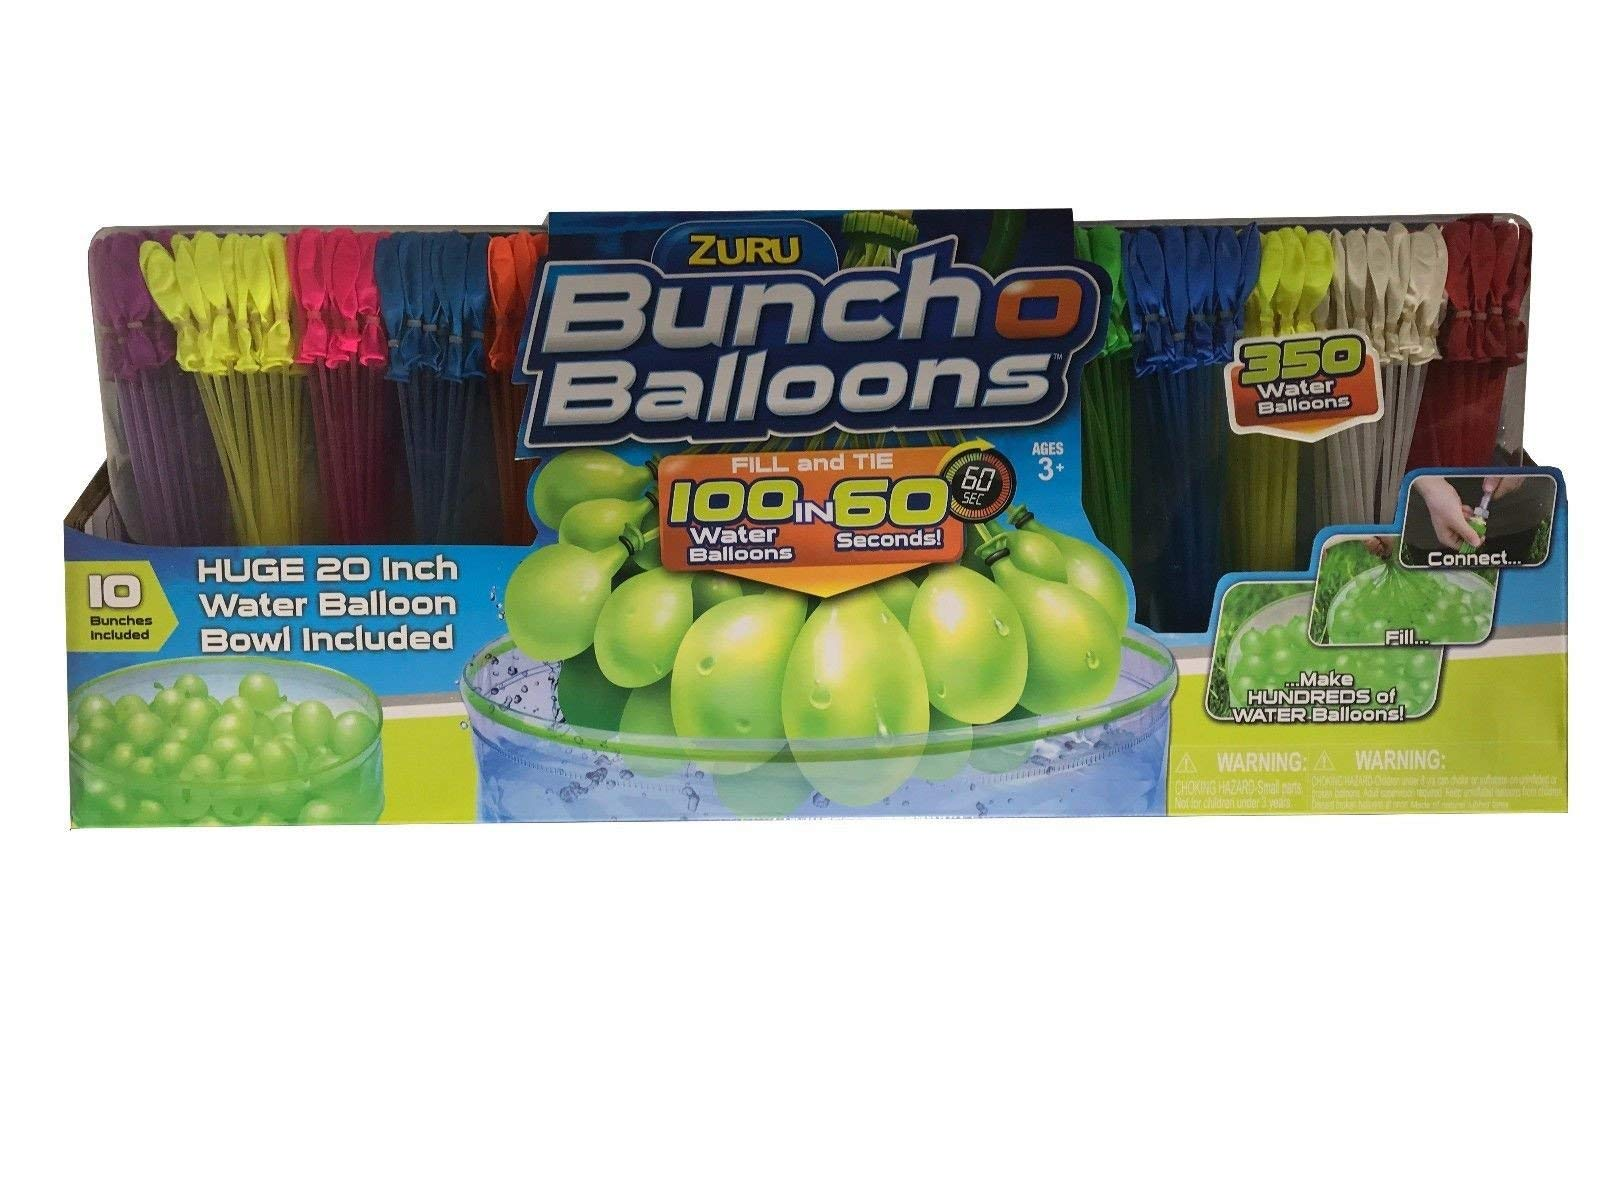 ZURU Bunch O Balloons, Fill in 60 Seconds, 350 Water Balloons, 20'' Water Balloon Bowl Included by ZURU